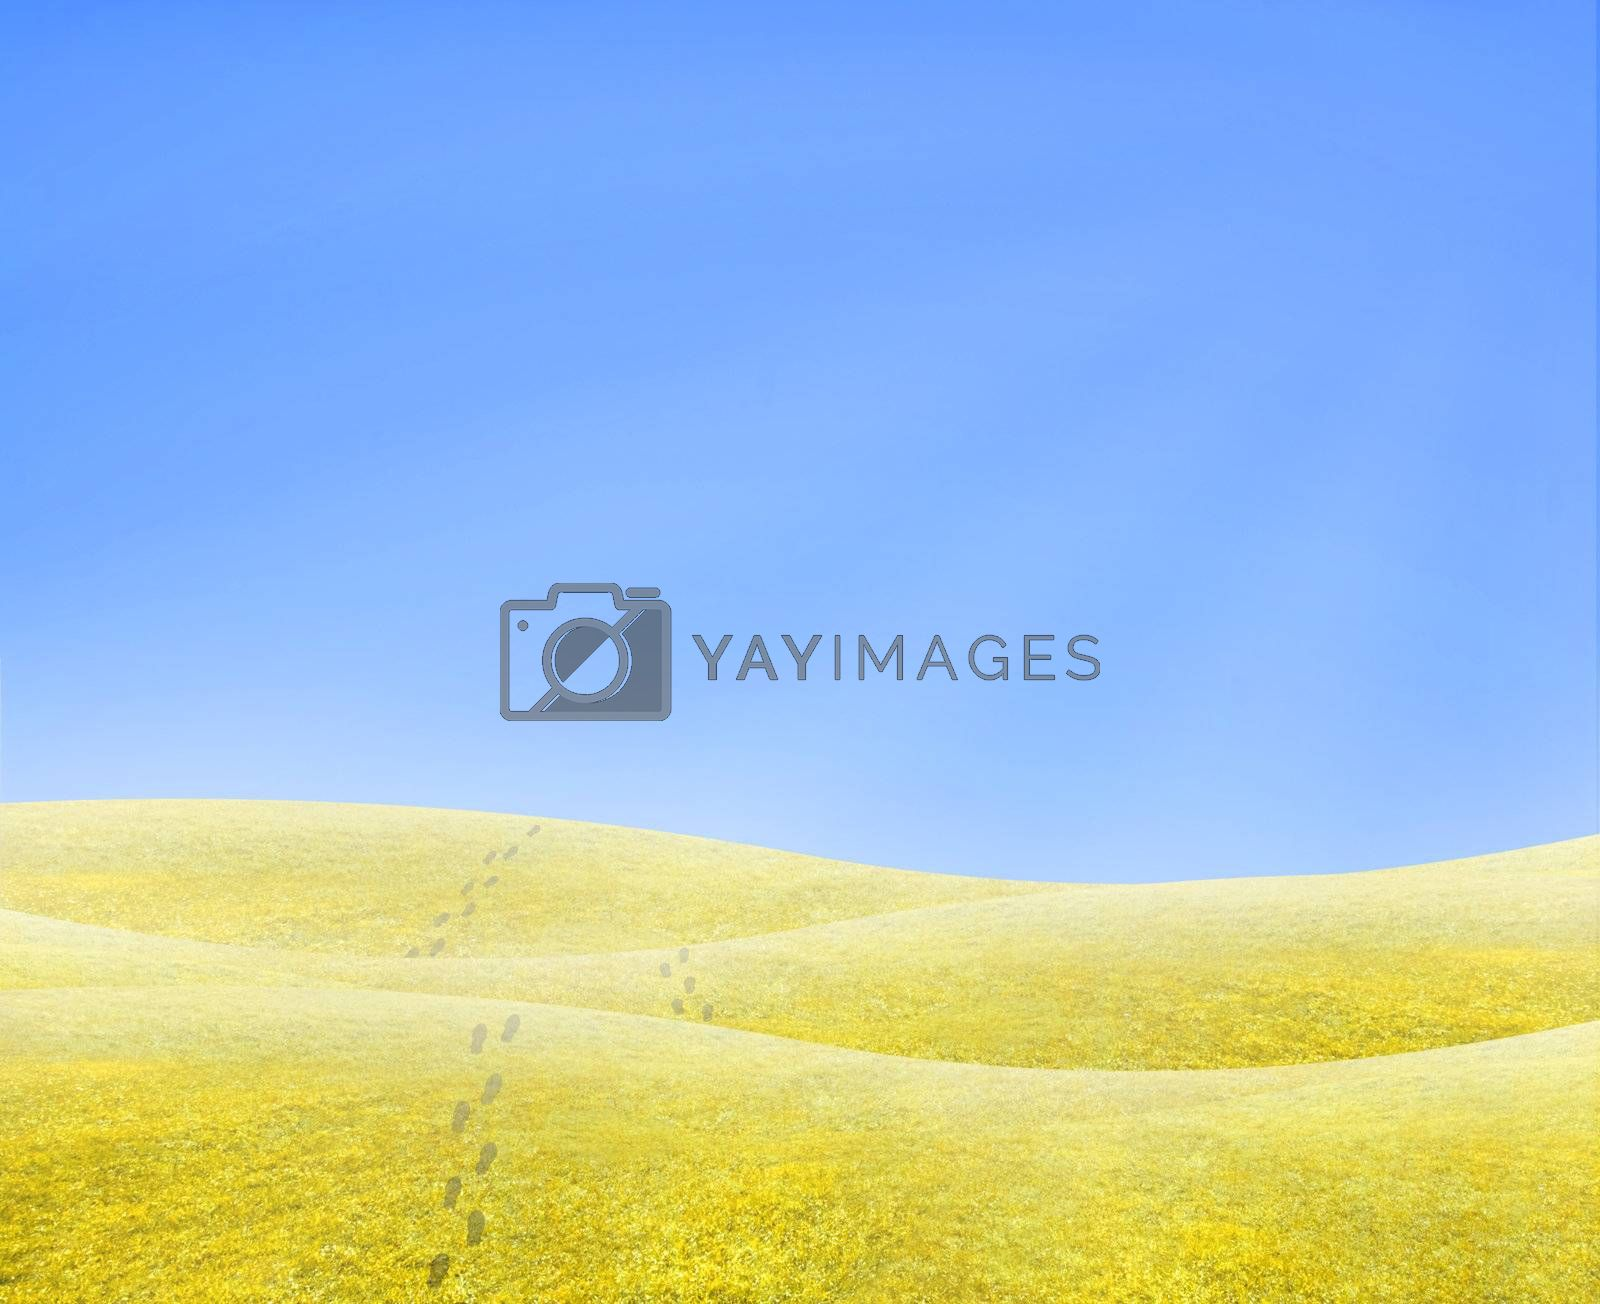 Simple tranquil beautiful horizon with a surreal yellow grass and footsteps walking into nothing.